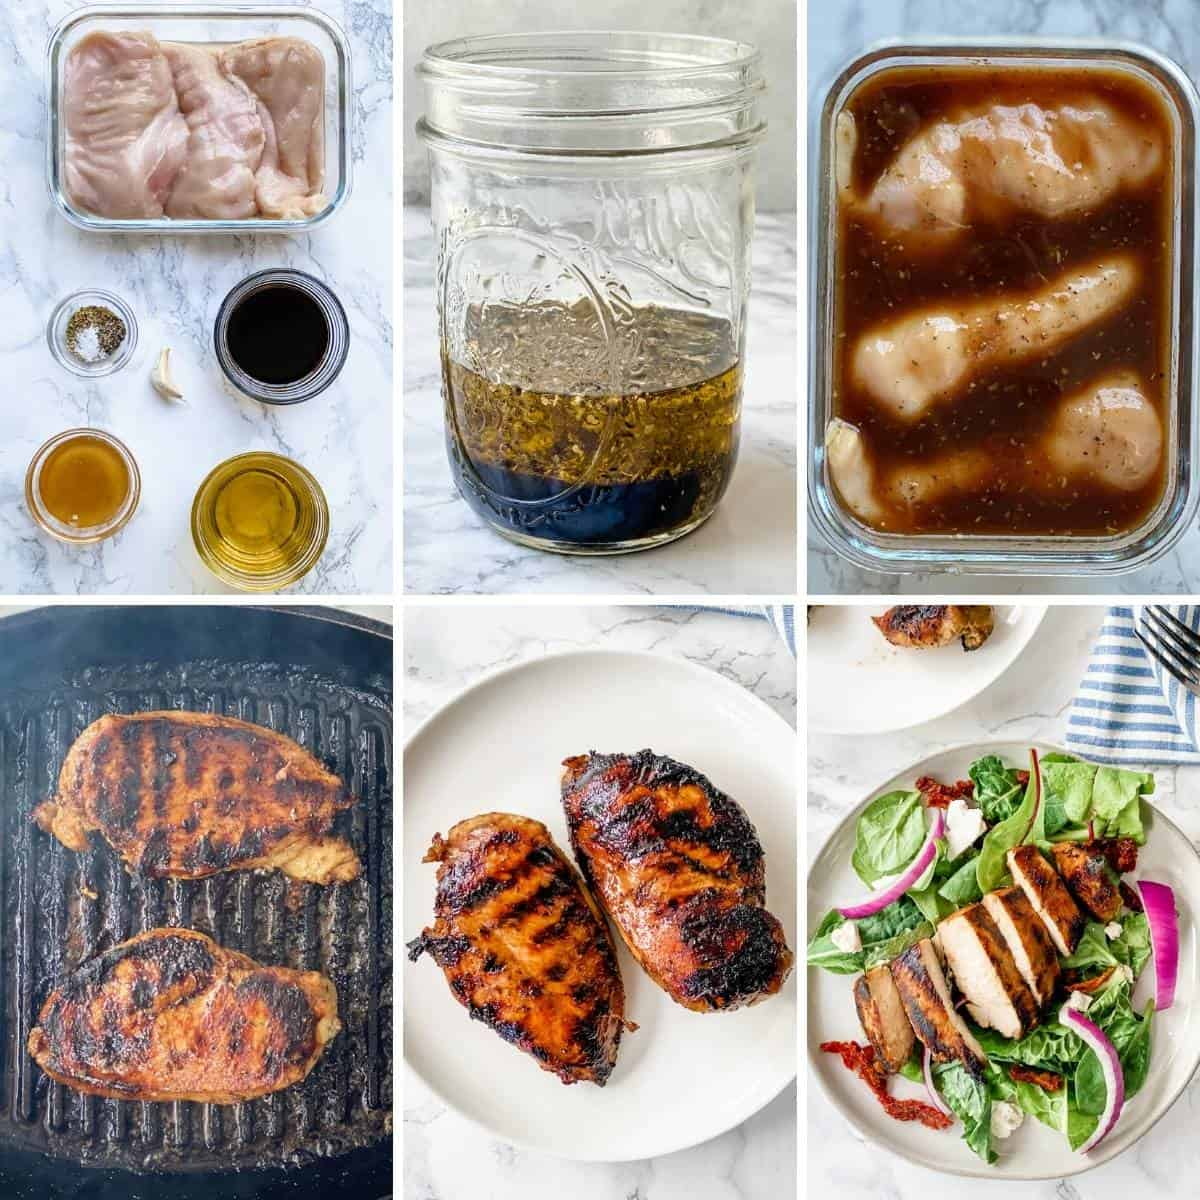 step by step collage showing how to put together balsamic chicken marinade and grill the chicken.